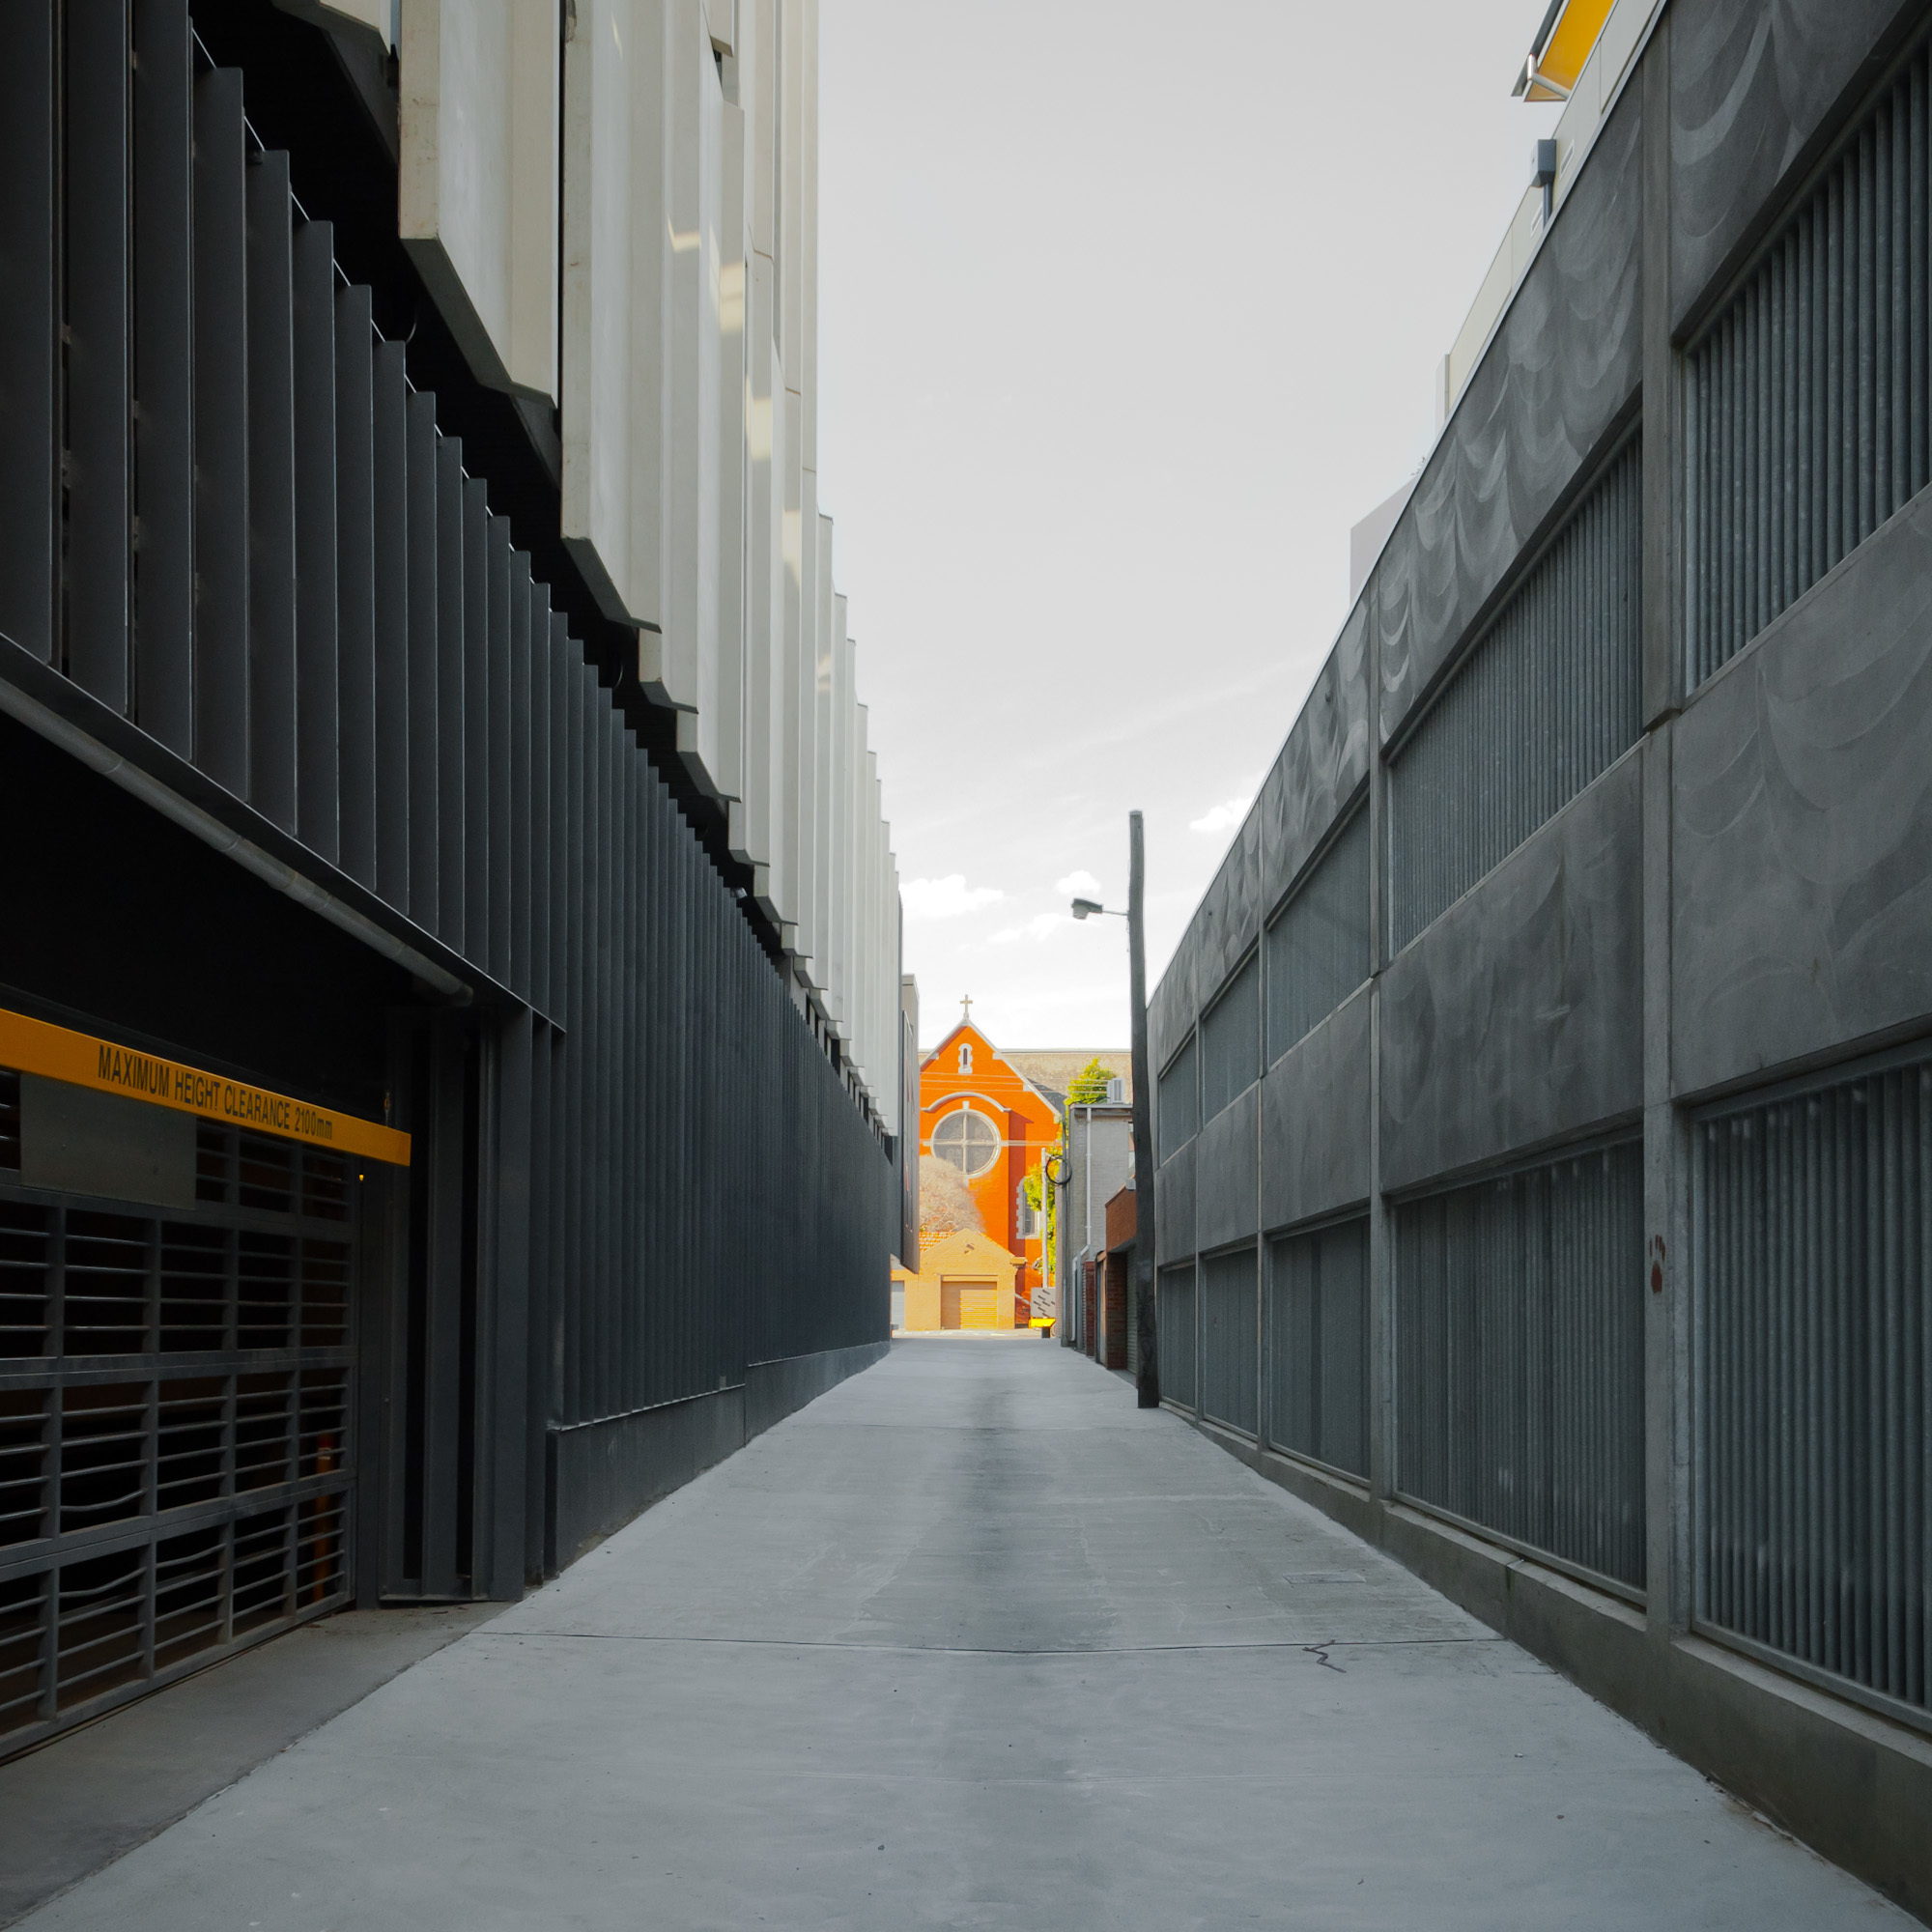 new alley with church building.jpg